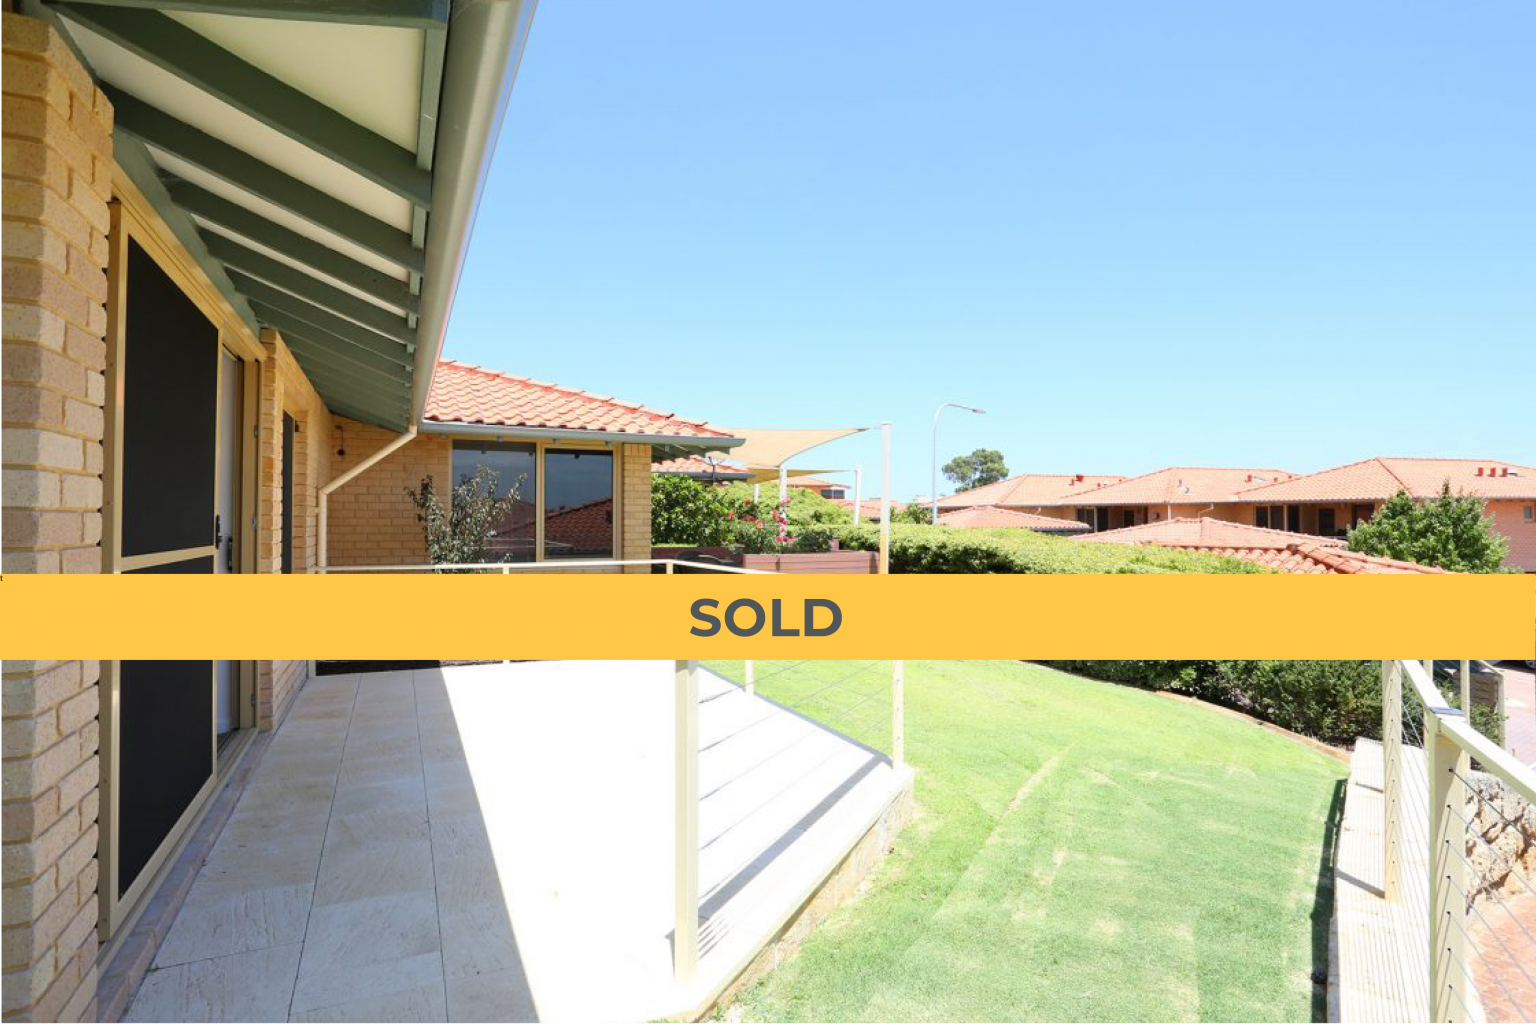 Villa 69 Sold | Independent Living Facility Perth | Ocean Gardens